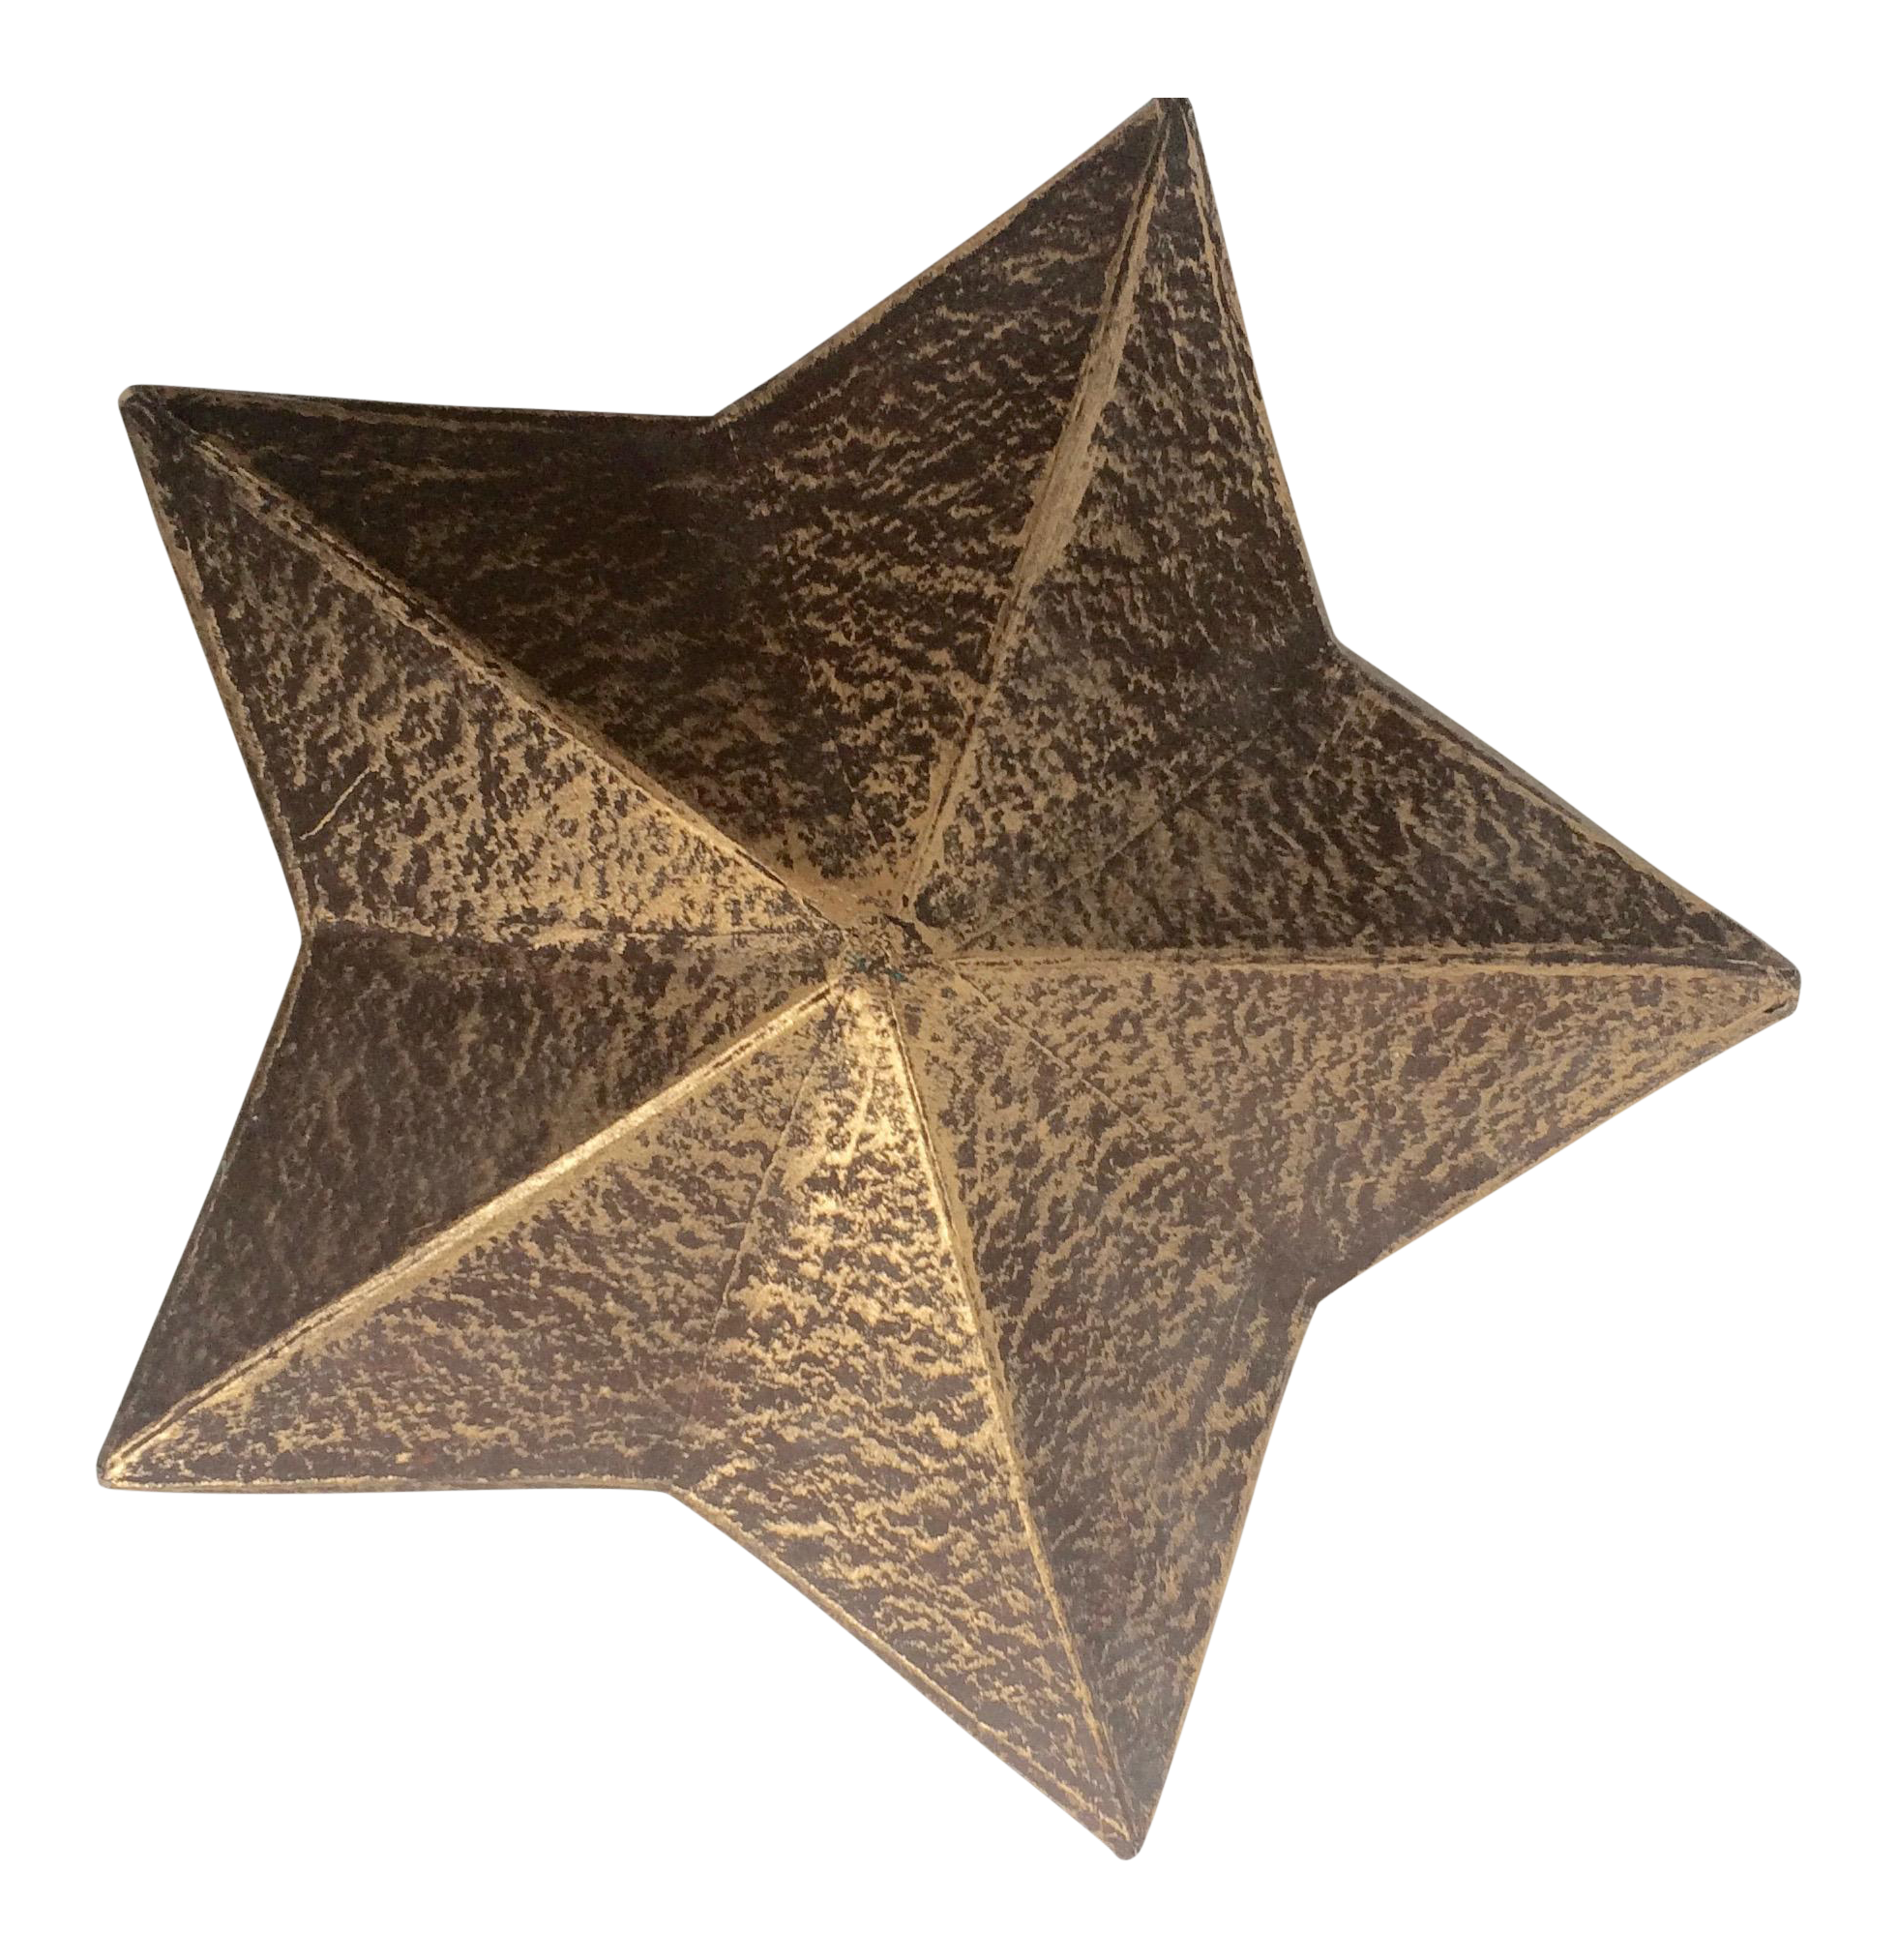 Vintage star png. Painted paper gold box